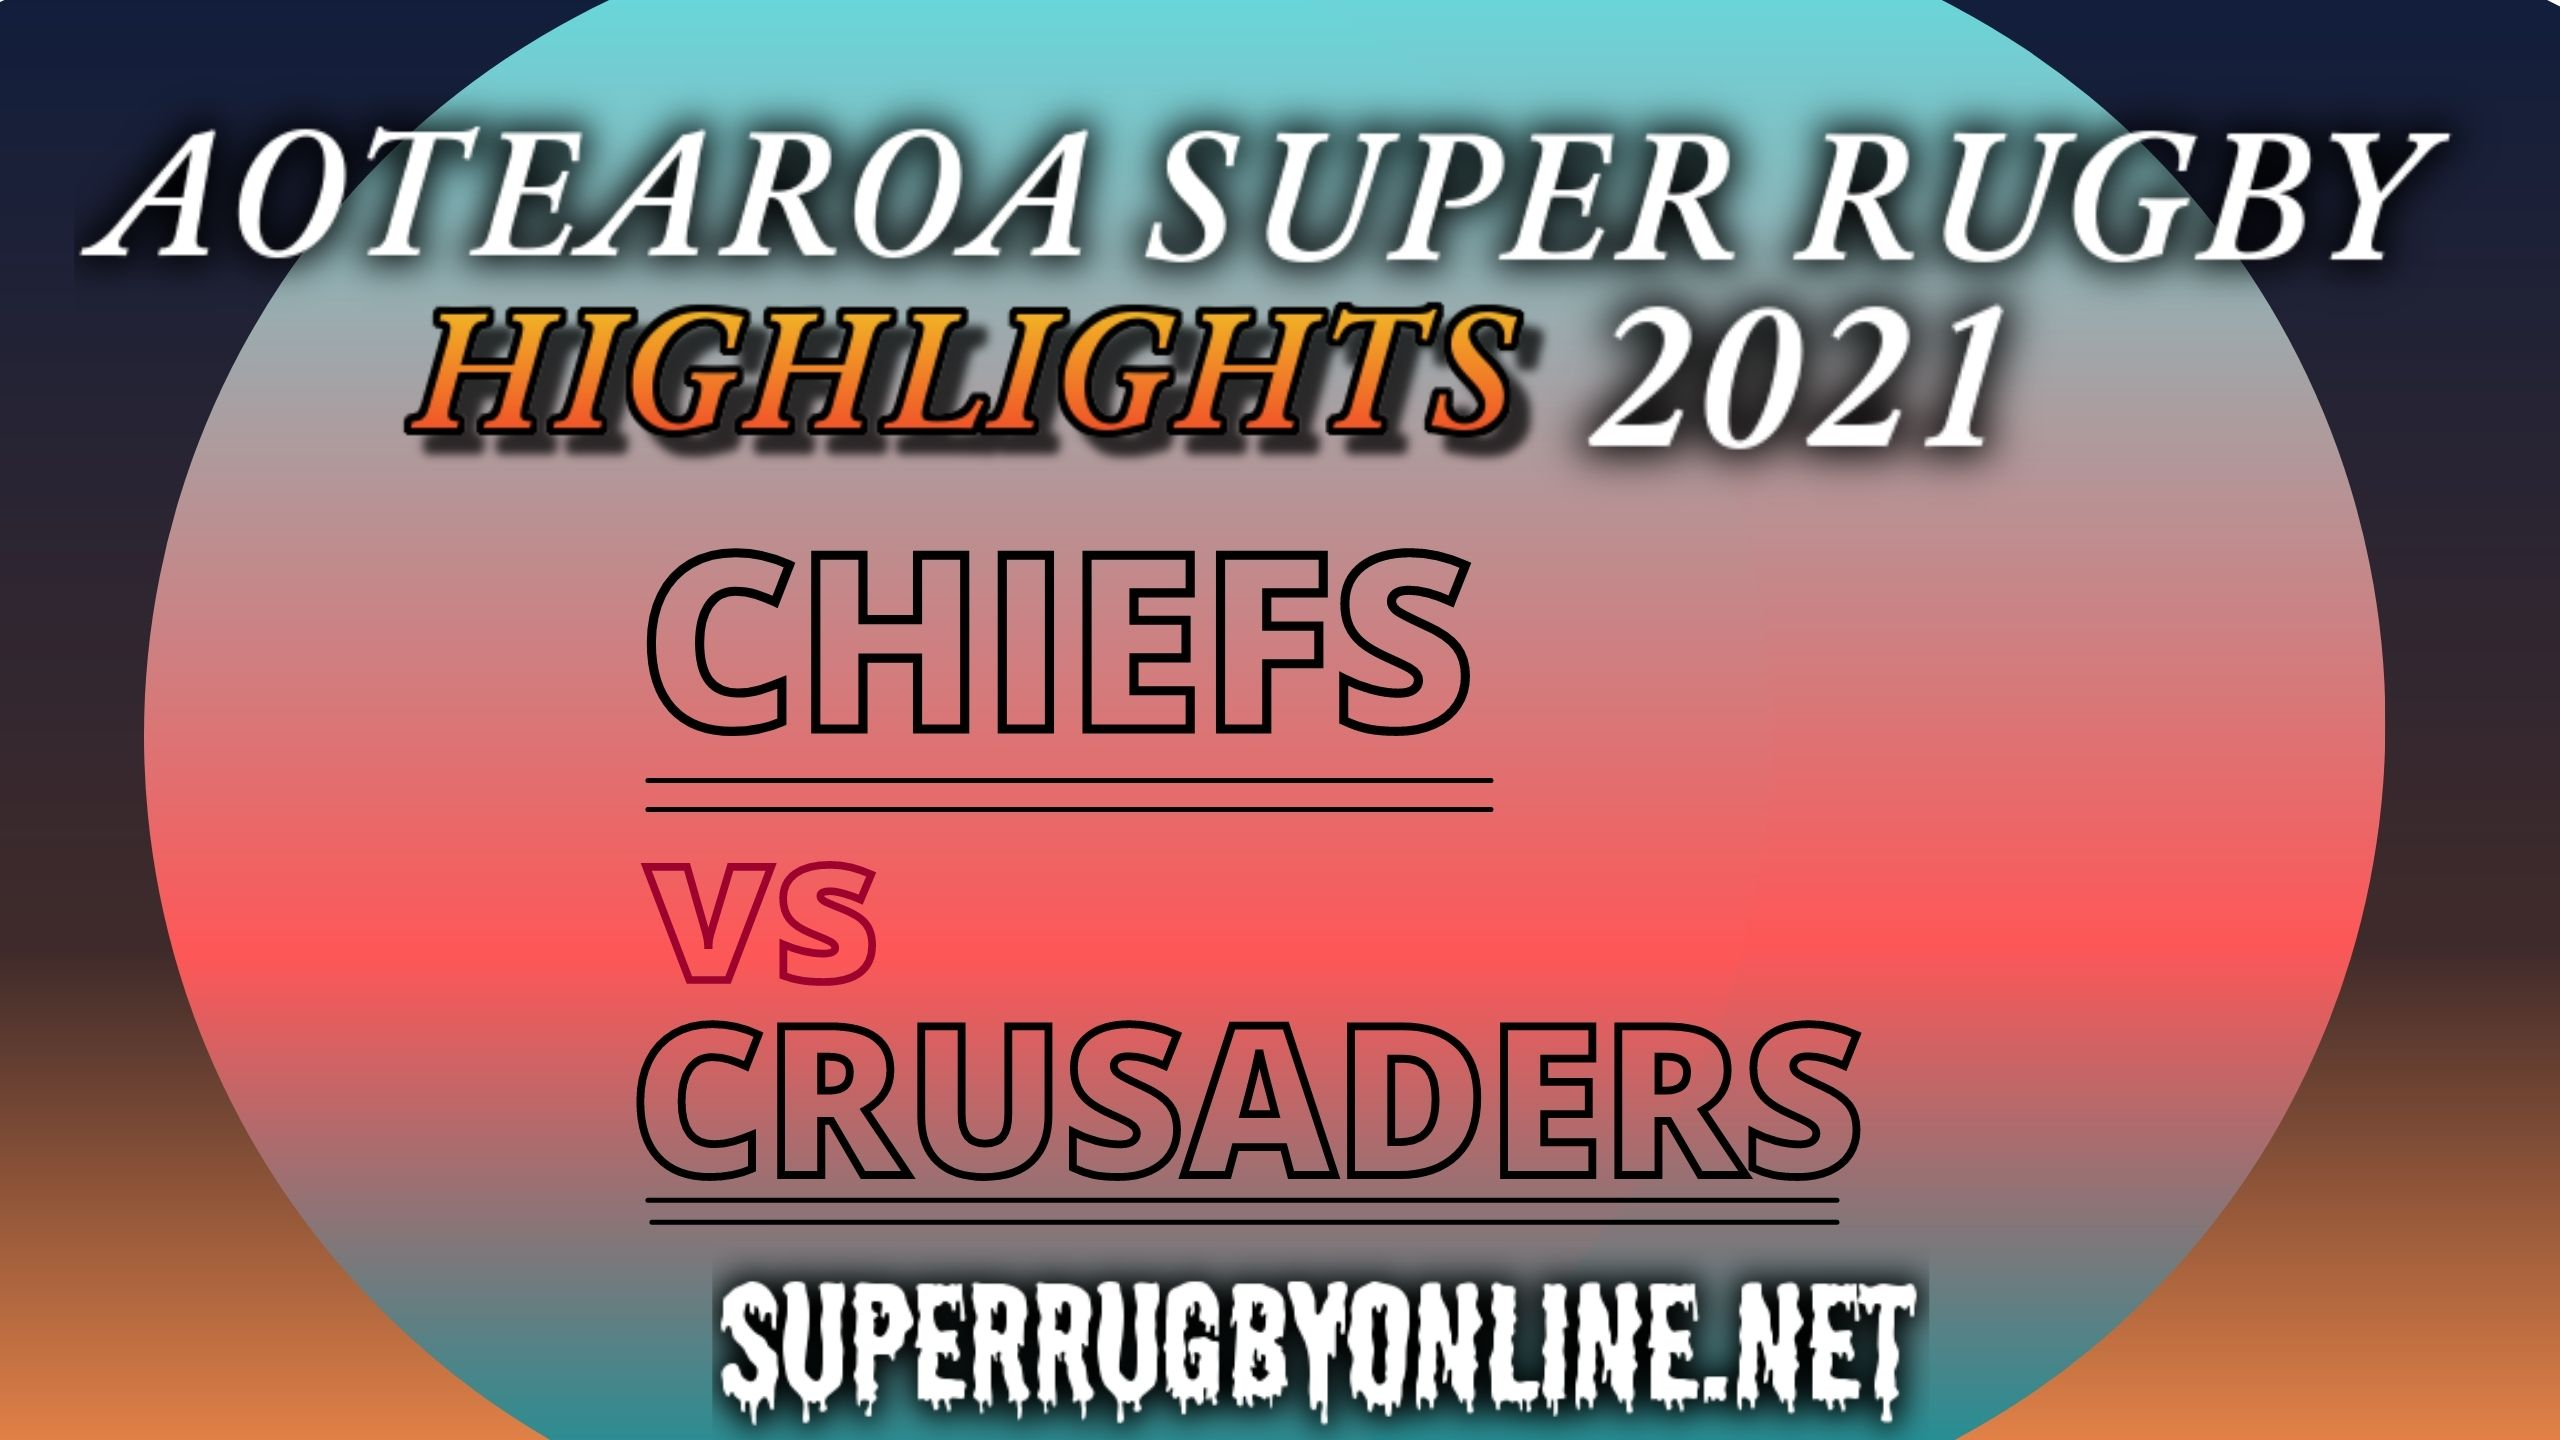 Chiefs Vs Crusaders Highlights 2021 Rd 8